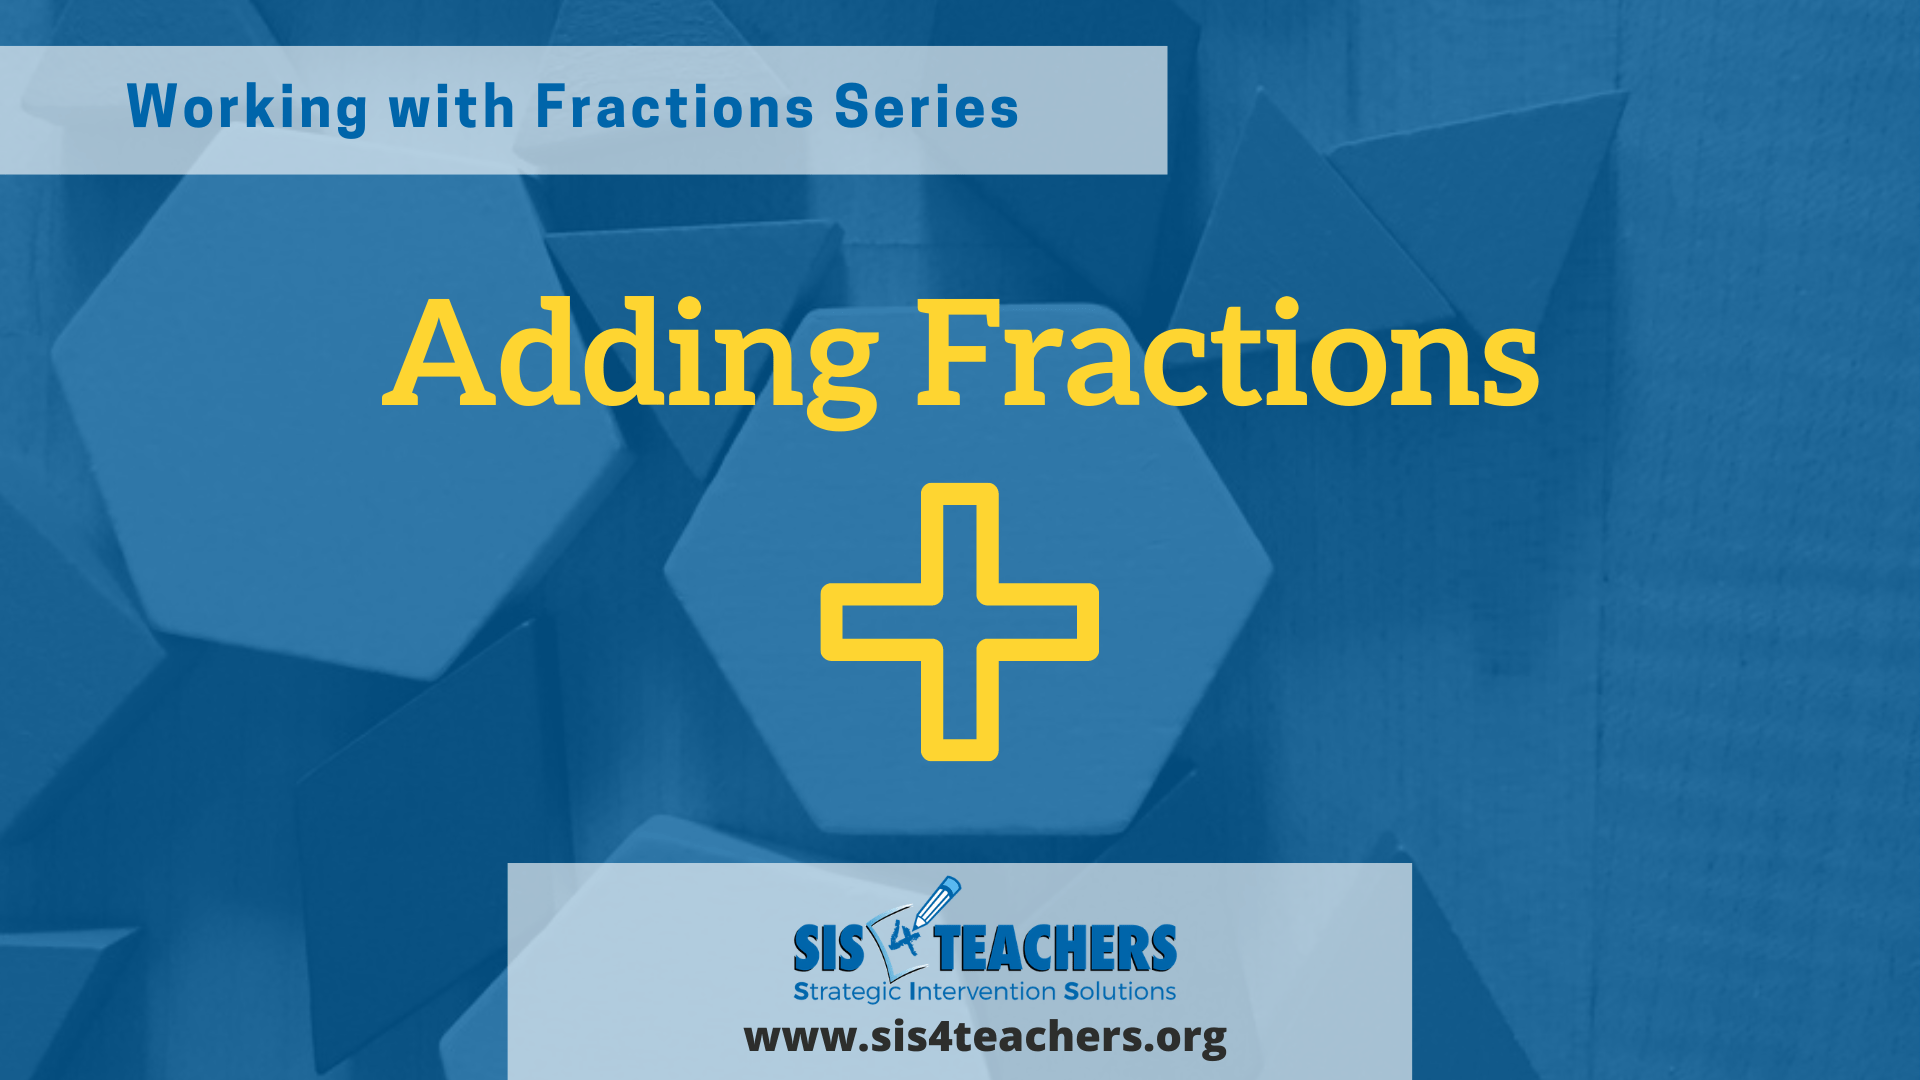 Working with Fractions: Adding Fractions